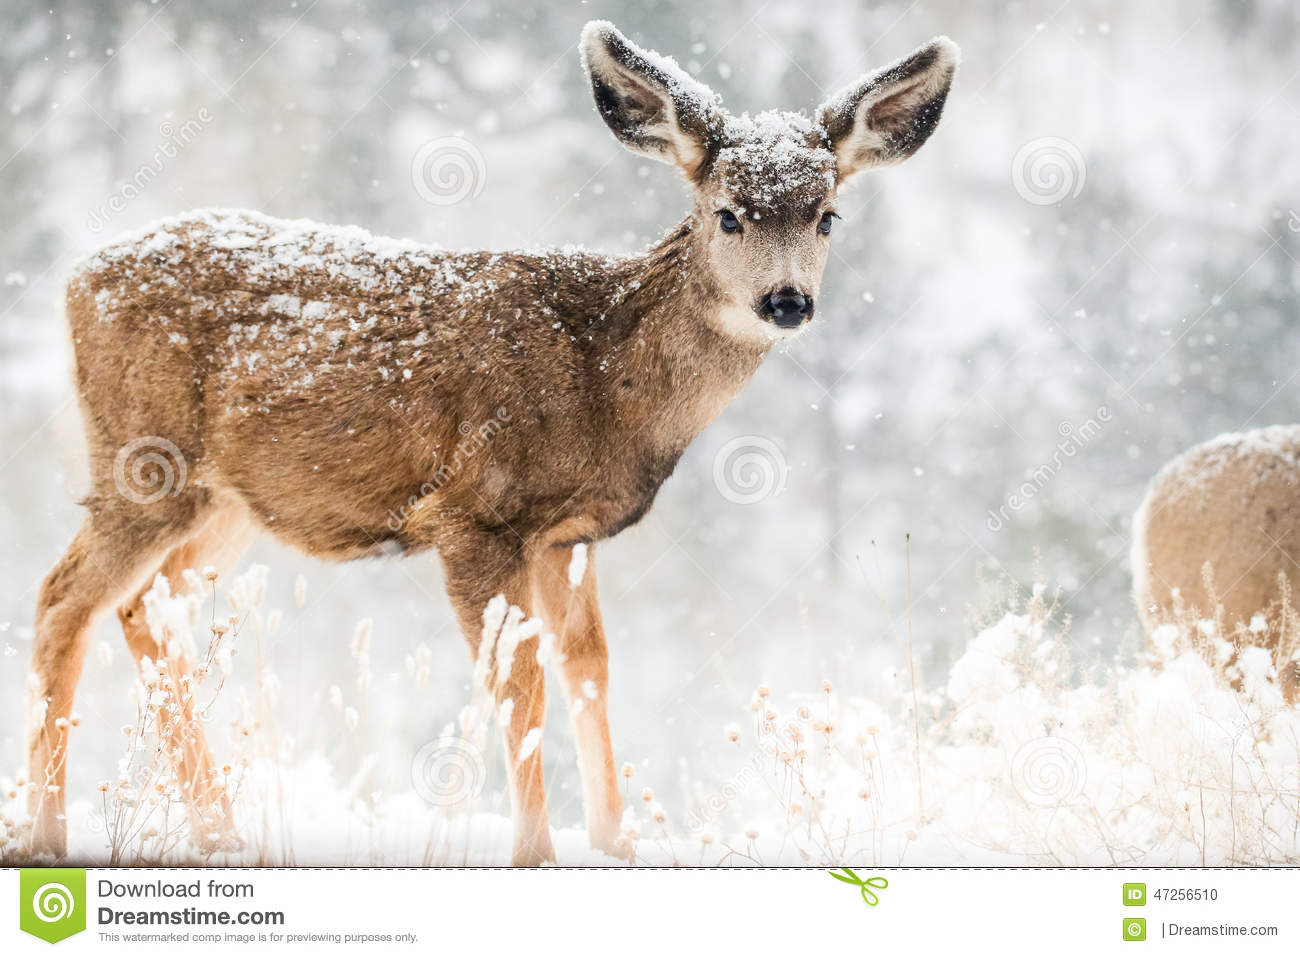 Wild baby deer with eye contact looking at camera in winter scene of ...